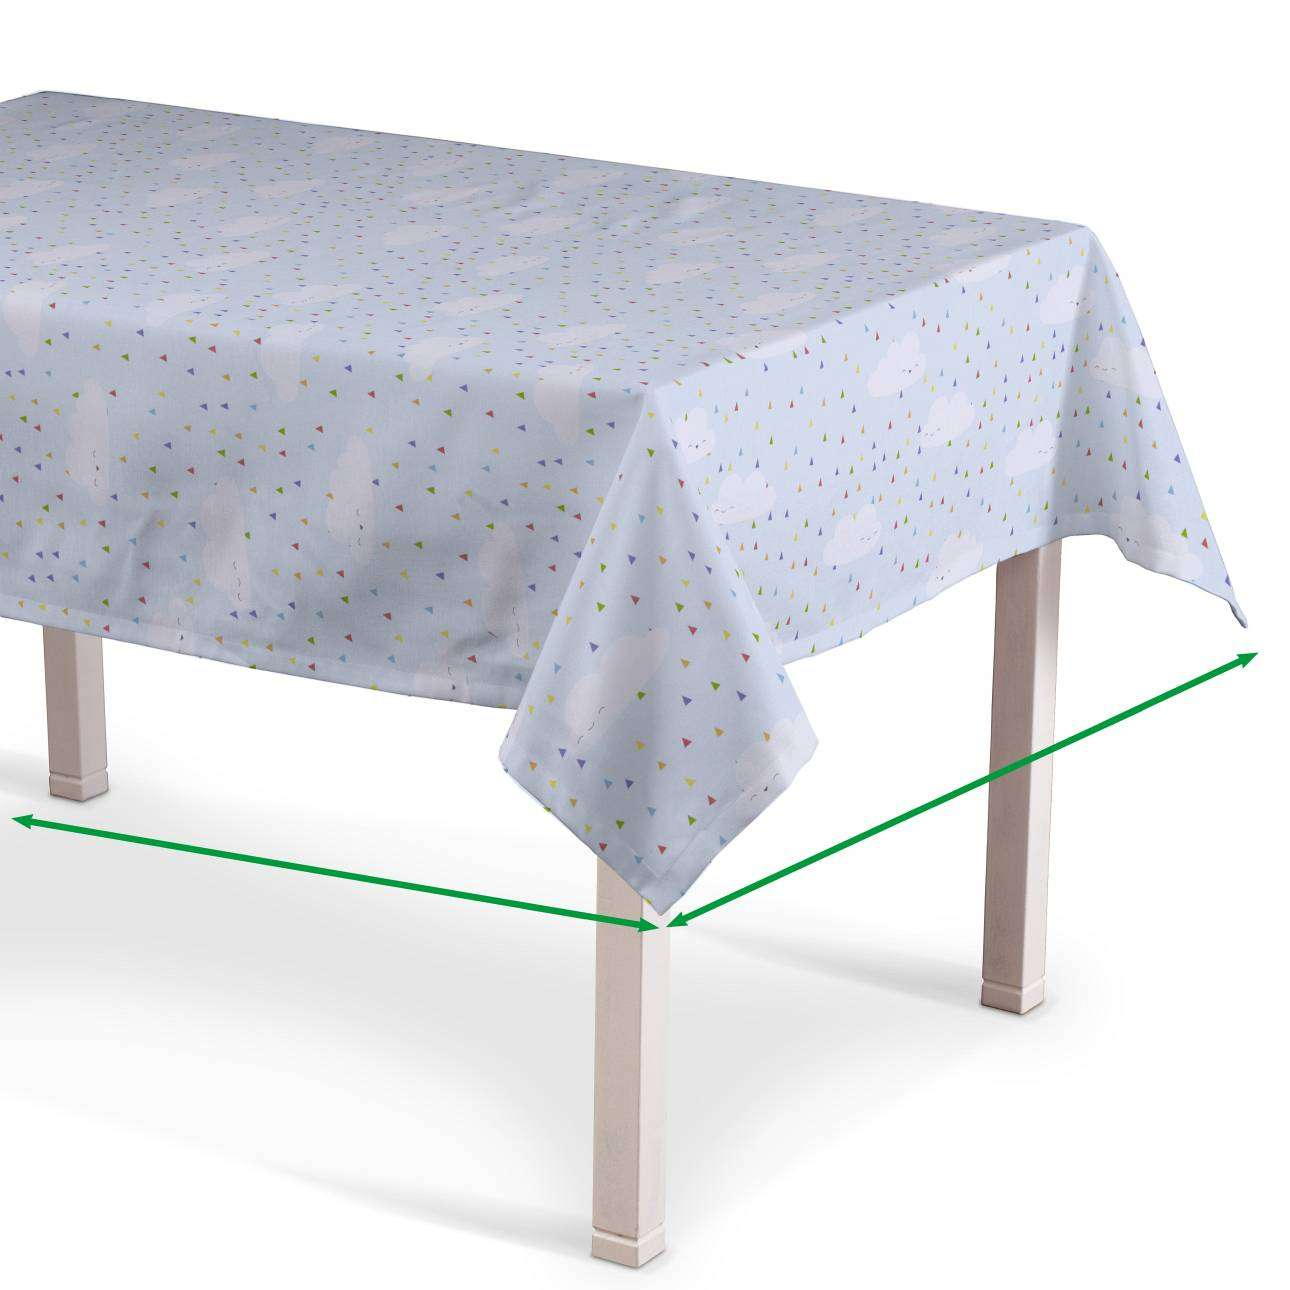 Rectangular tablecloth in collection Apanona, fabric: 151-03